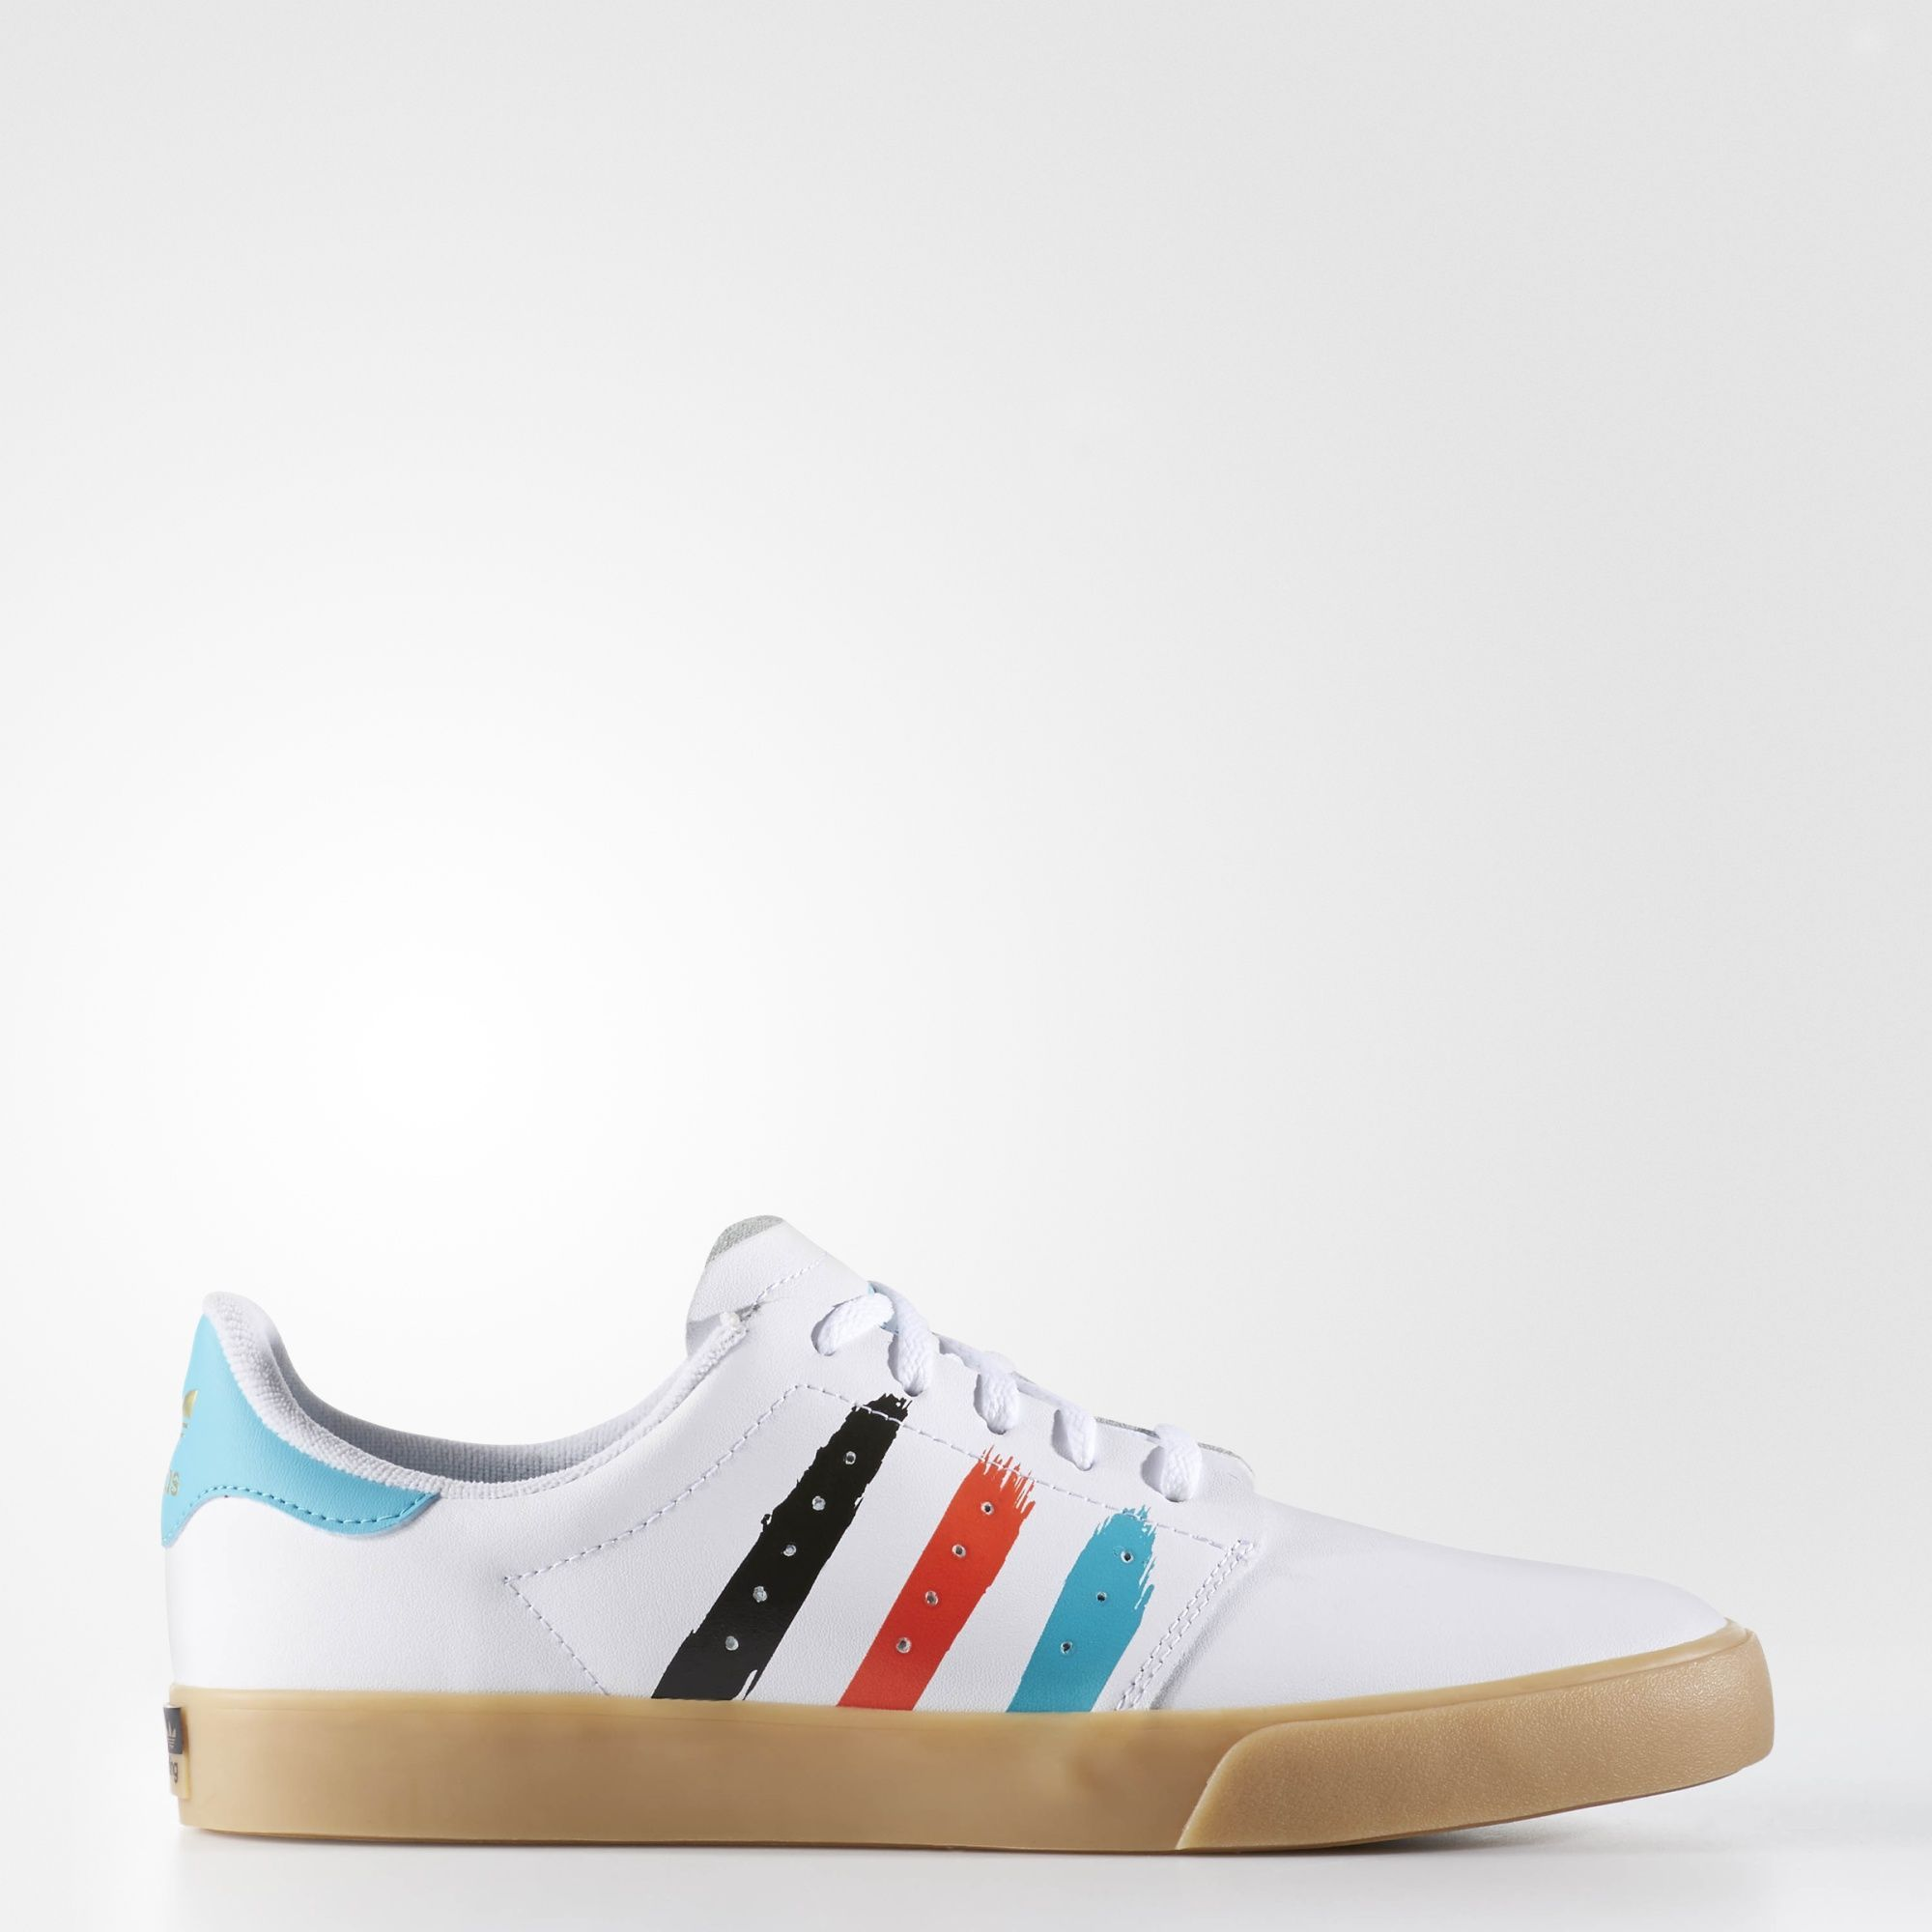 Seeley Shoes | adidas US